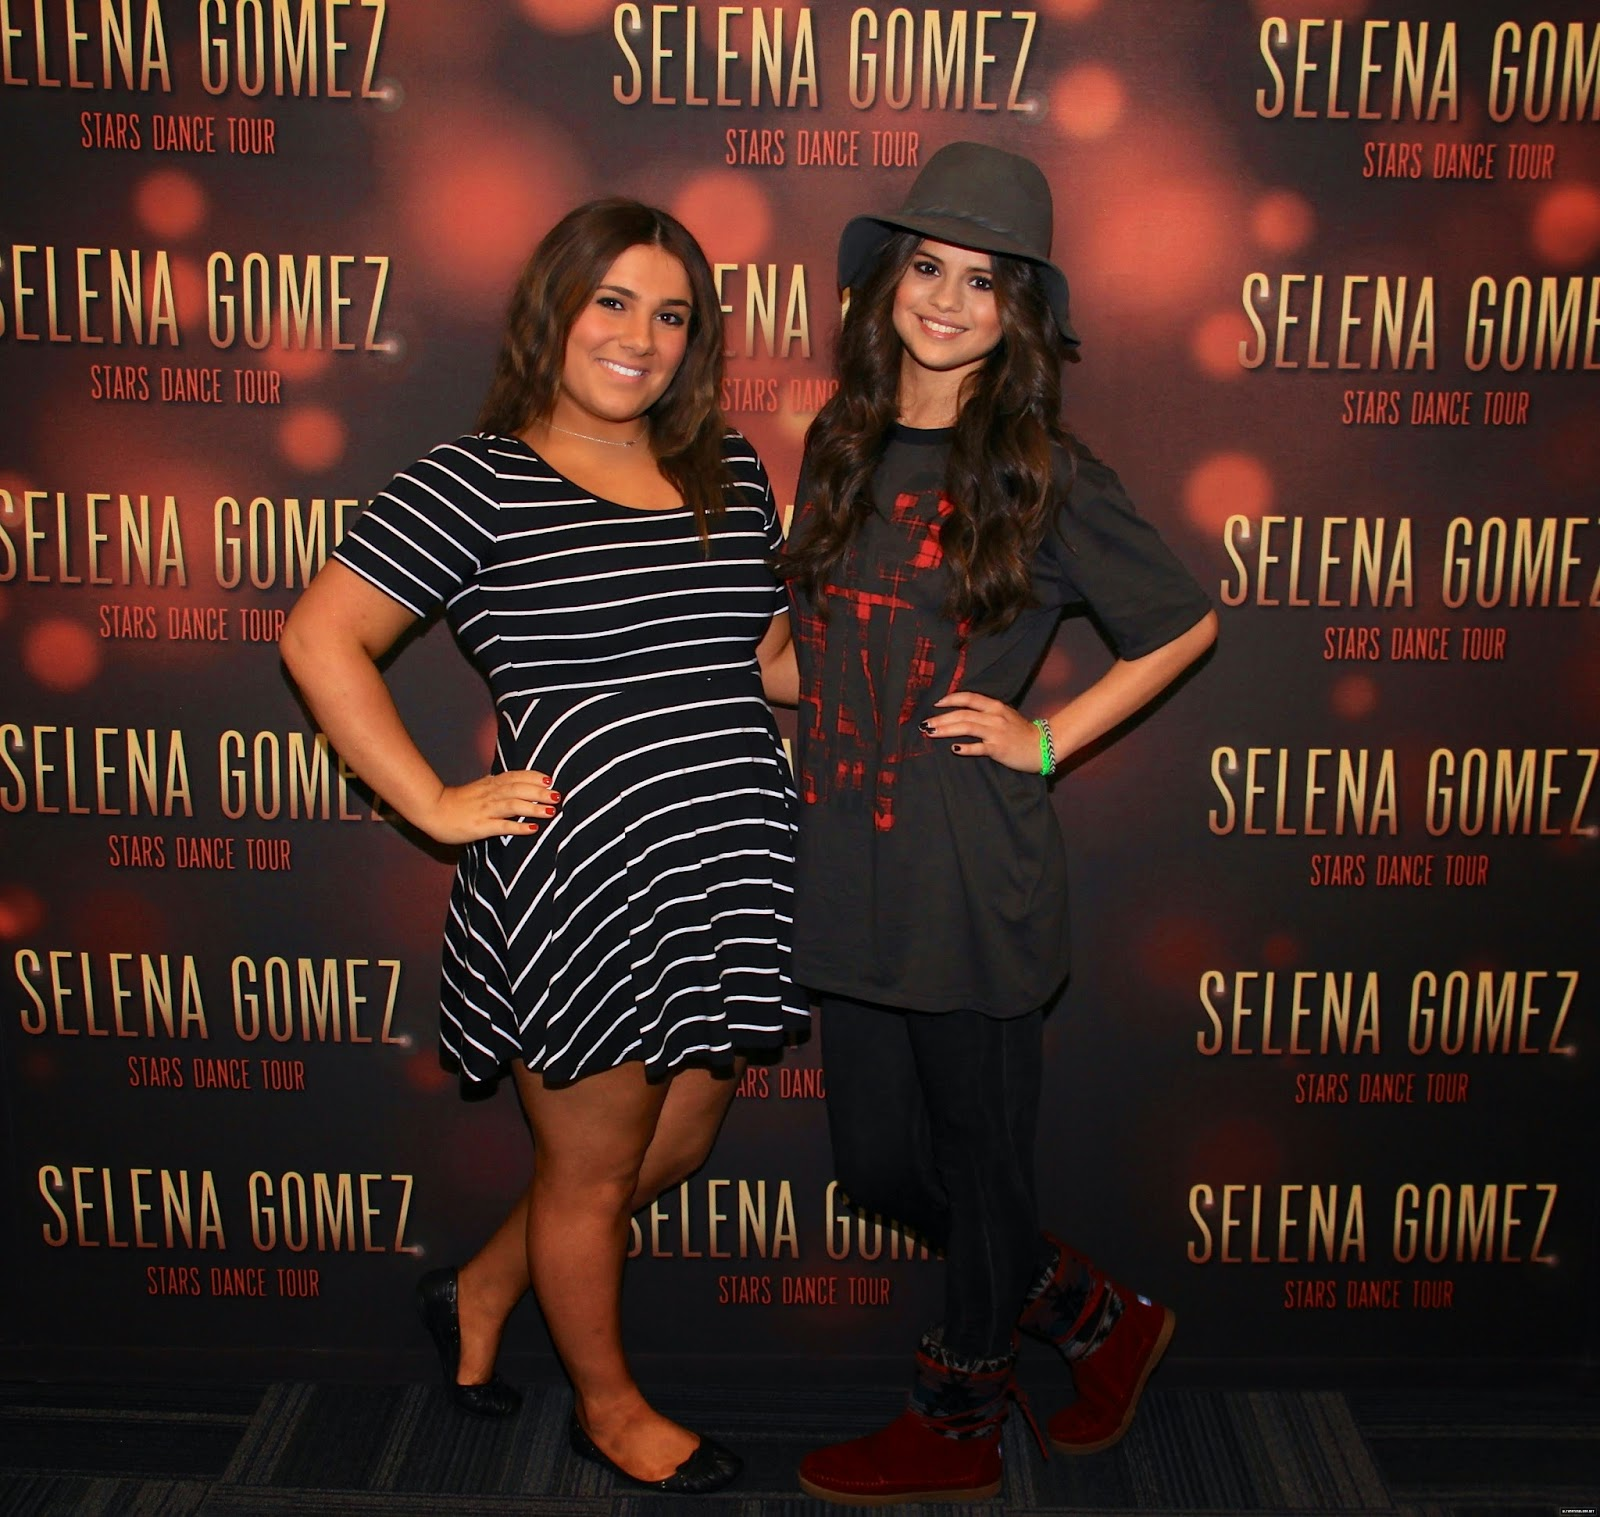 selena gomez meet and greet 2013 calendar